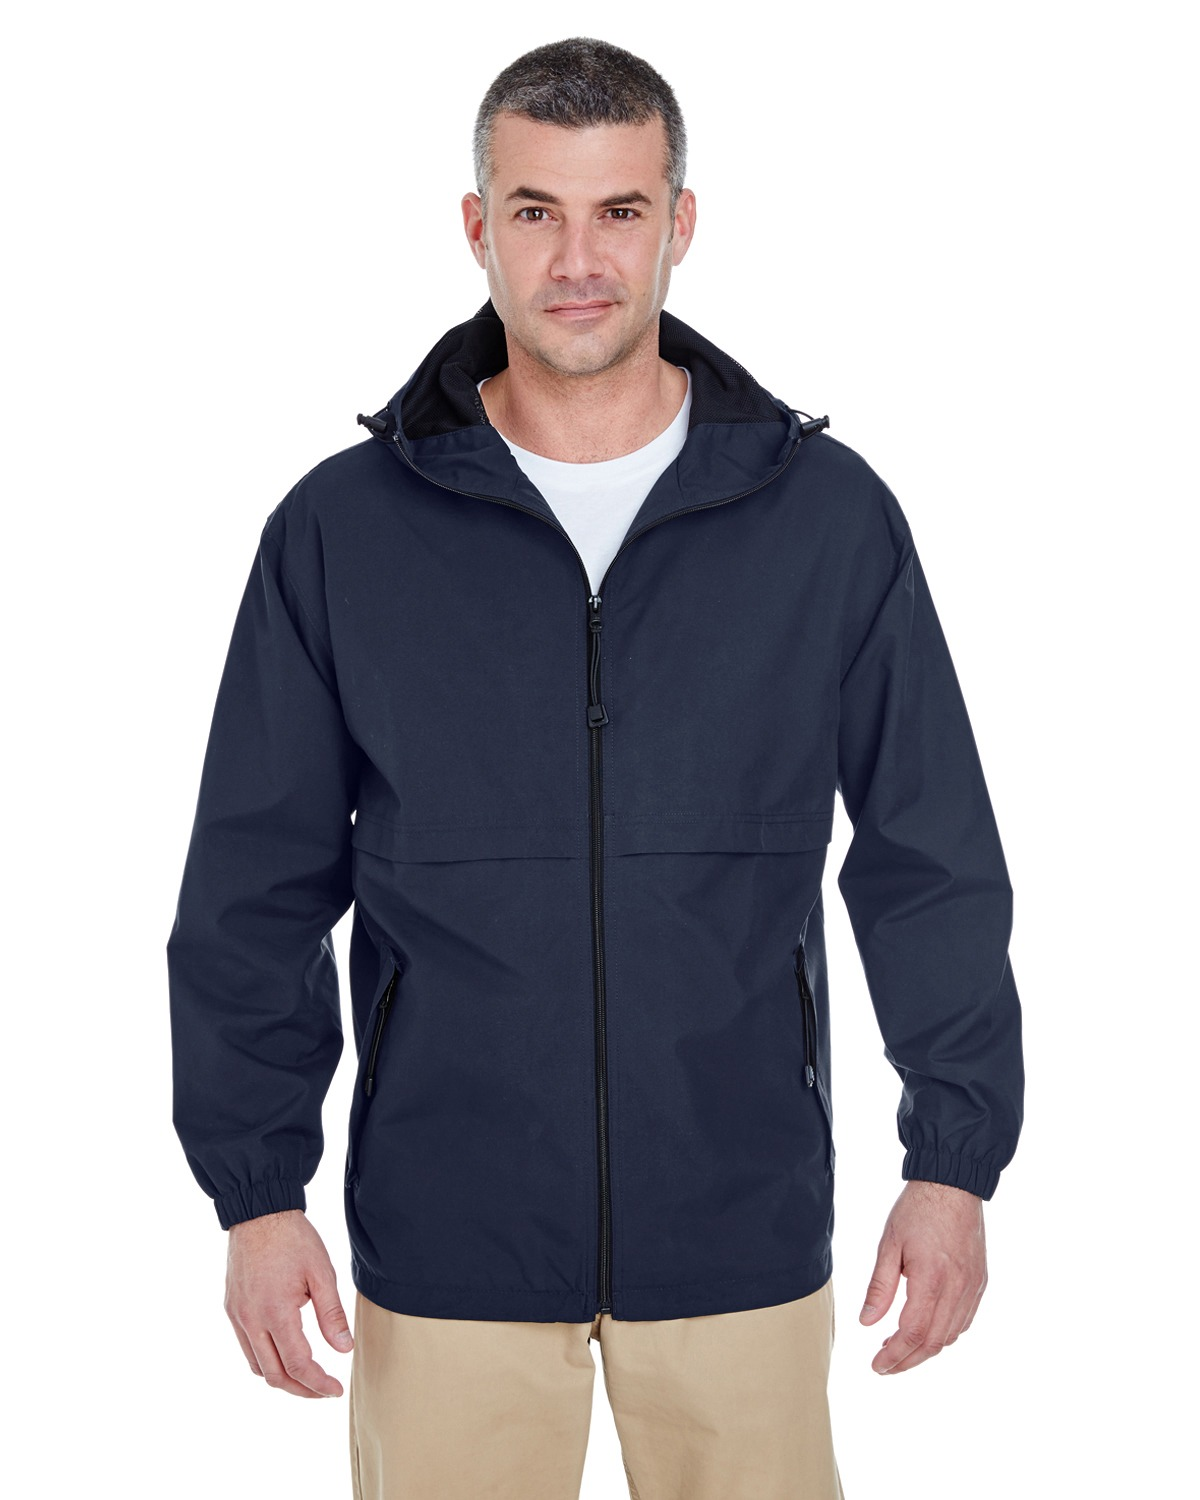 UltraClub 8908 Men Microfiber Full Zip Hooded Jacket Navy at GotApparel